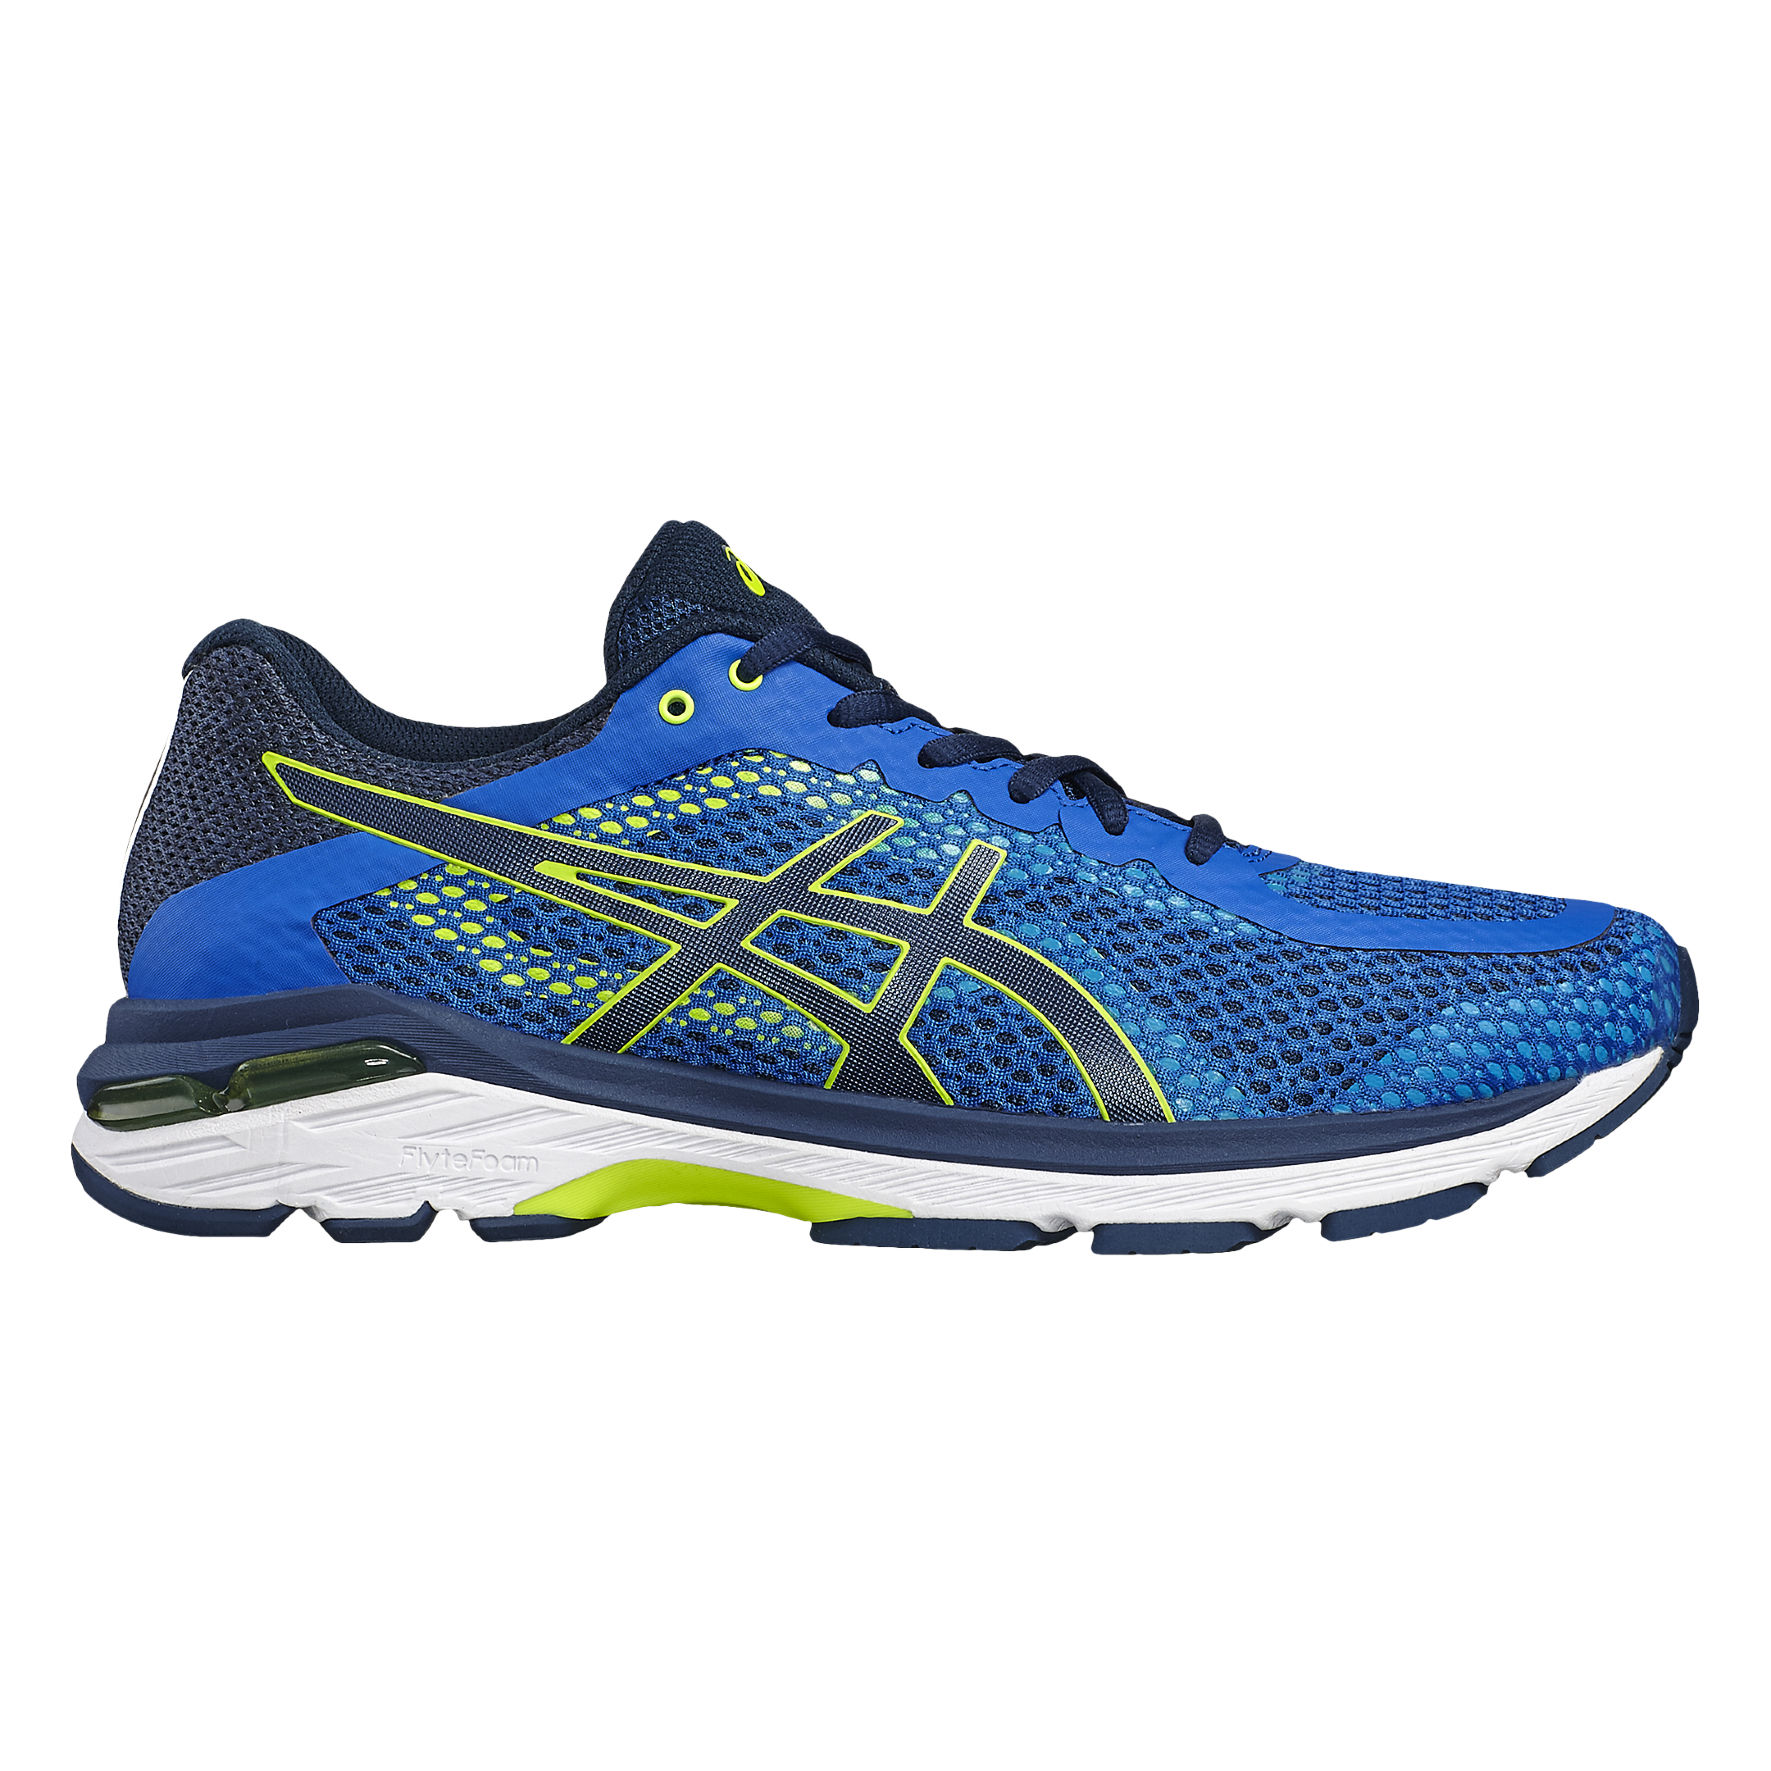 Asics Gel Pursue 4 in Blau